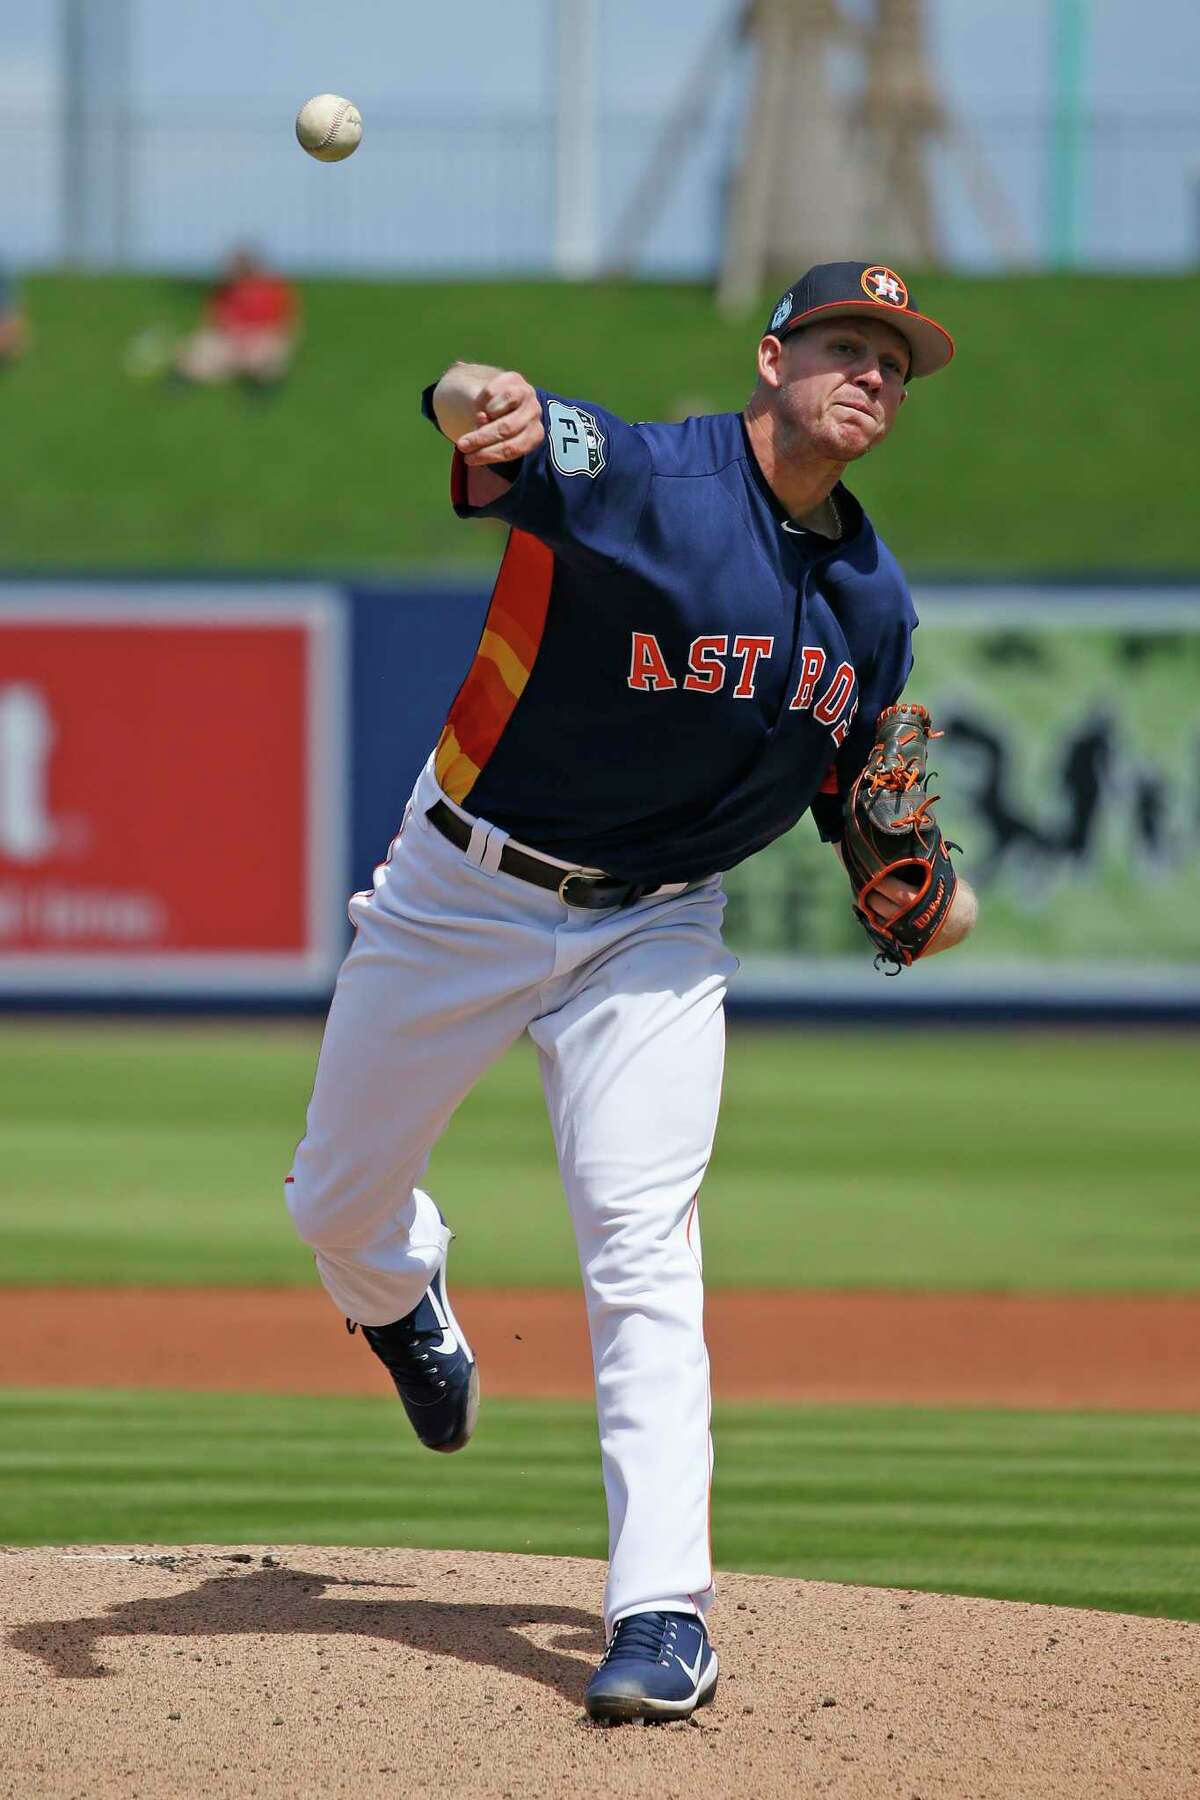 WEST PALM BEACH, FL - MARCH 6: Chris Devenski #47 of the Houston Astros throw the ball against the Boston Red Sox in the first inning during a spring training game at The Ballpark of the Palm Beaches on March 6, 2017 in West Palm Beach, Florida. The Astros and Red Sox played to a 5-5 tie.